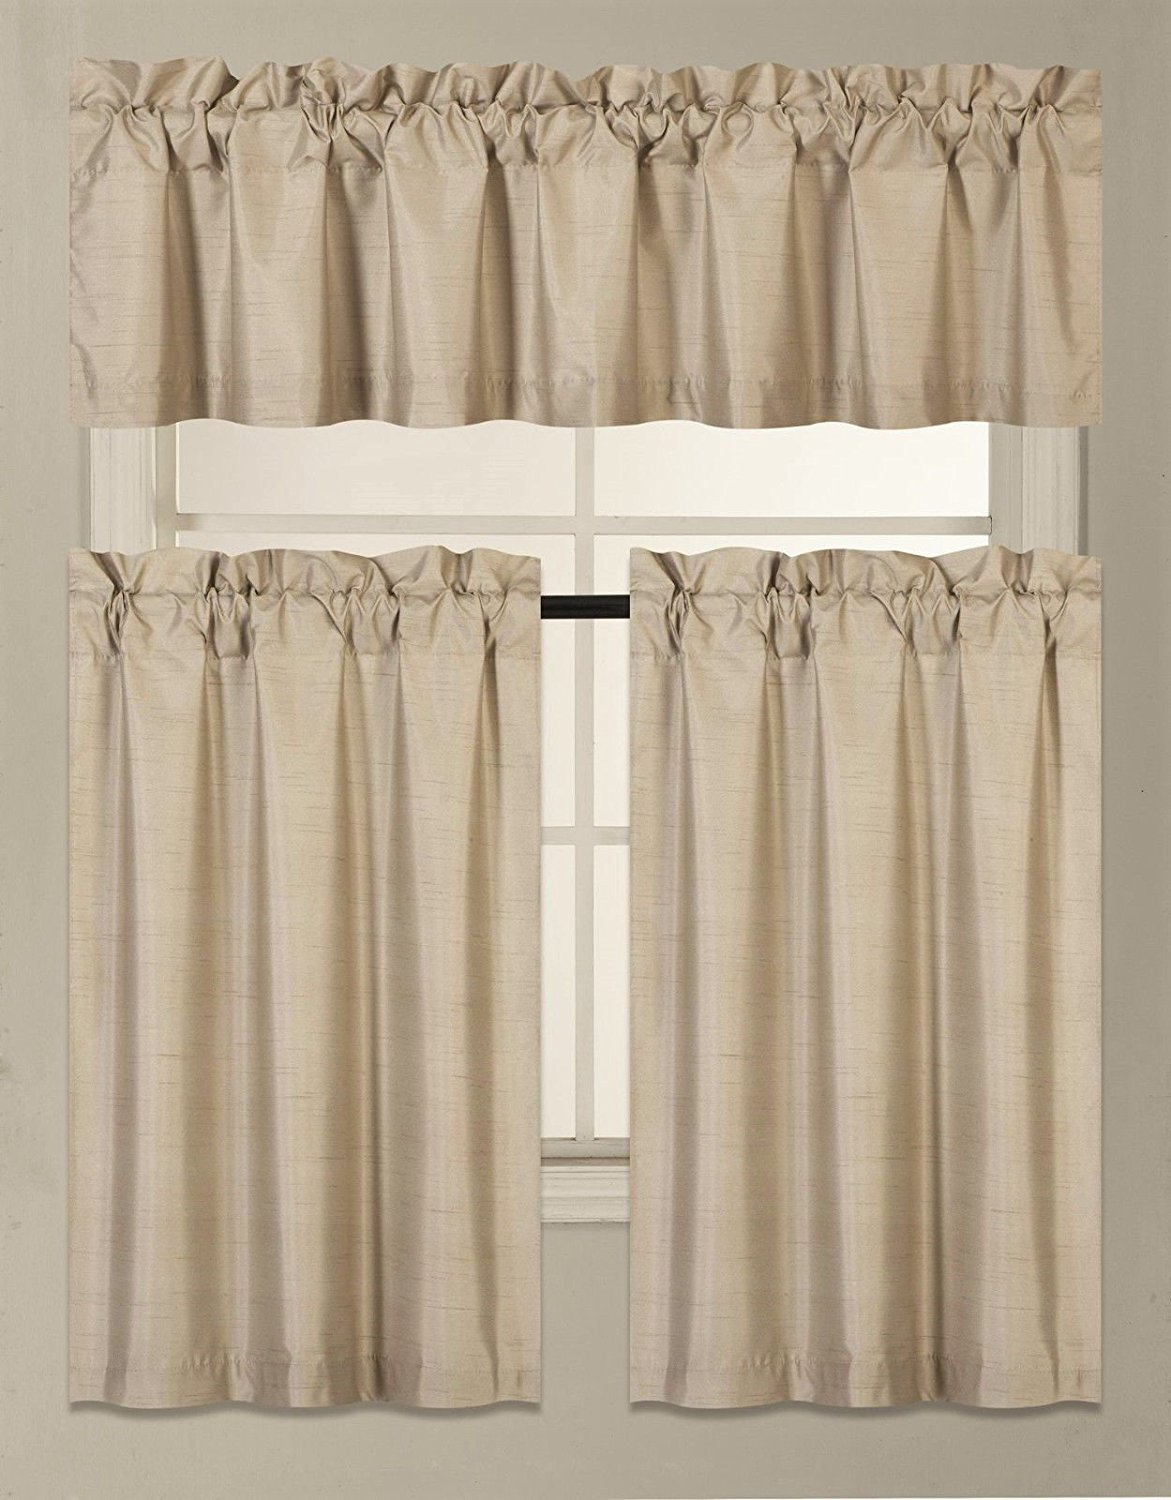 Elegant Home Collection 3 Piece Solid Color Faux Silk Blackout Kitchen Window Curtain Set with Tiers and Valance Solid Color Lined Thermal Blackout Drape Window Treatment Set #K3 (Taupe)